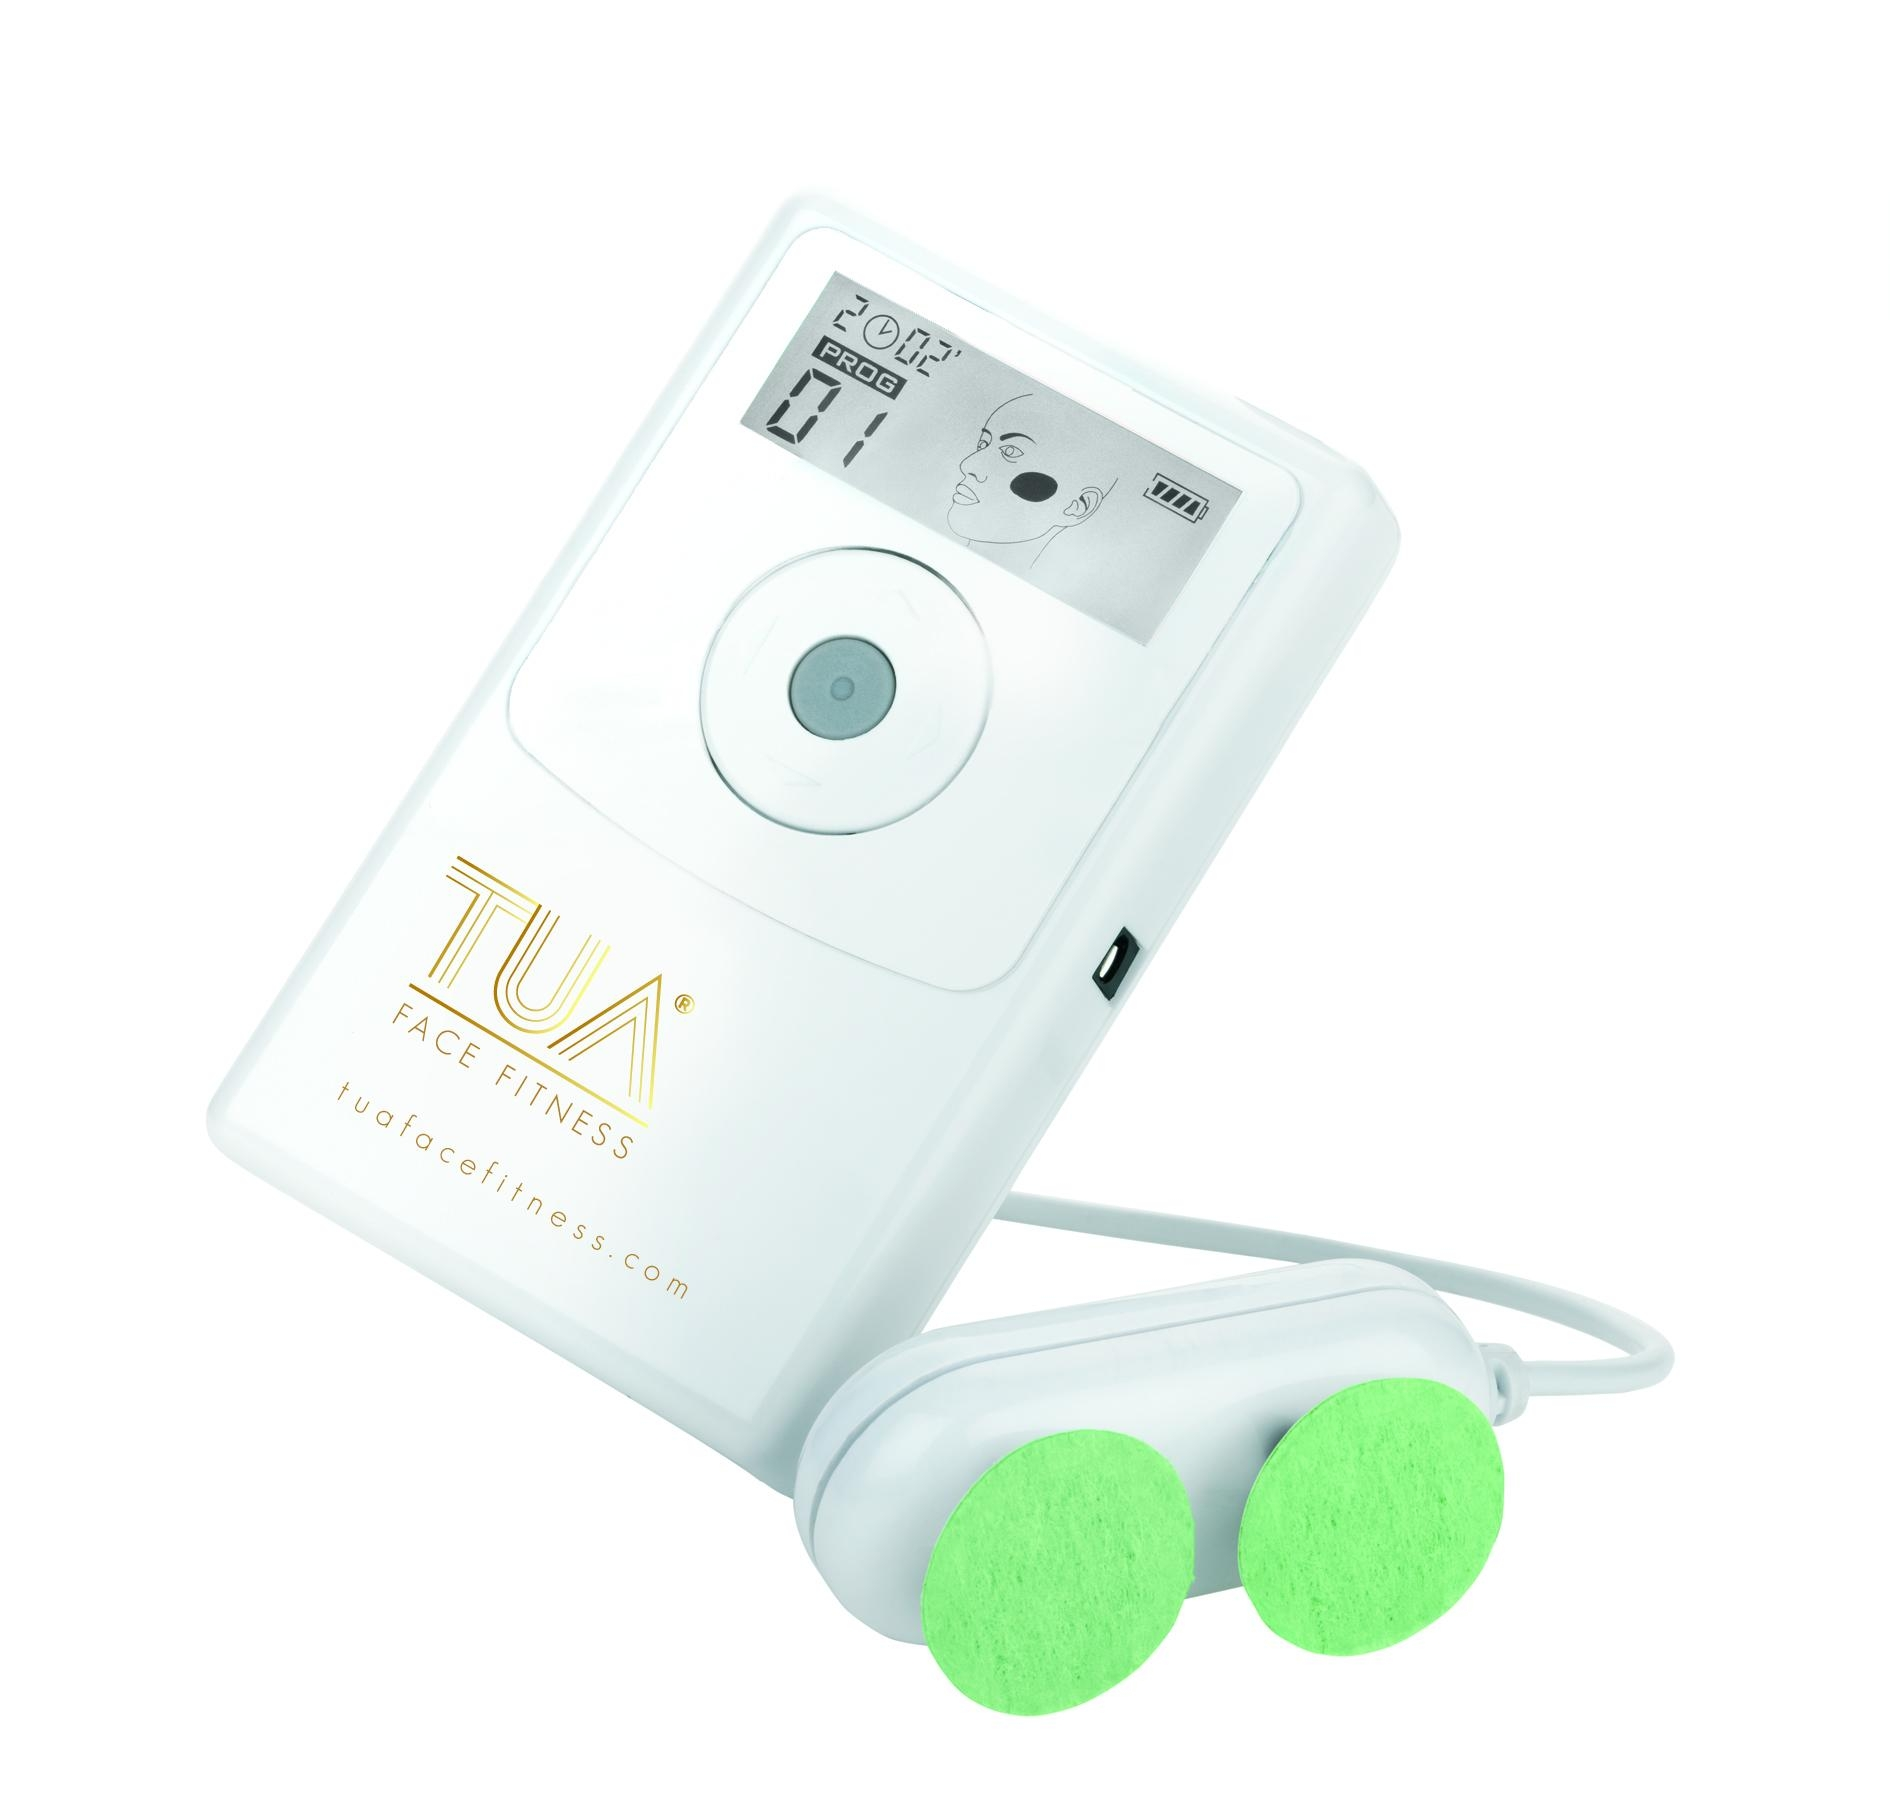 TUA Face FitnessSmart Facial Lifting & Toning Device - Using hydro electronic micro-current technology to stimulate muscle contractions causing your face and neck to lift and tighten. The only fitness device in the market introduces 5 level of pre-programmed exercise frequency to 5 different areas of the face according to muscles thickness and density for muscles stimulation optimization. One of many users favorites is its well thought out engineering design to not having to succumb to long term cost of cream or gel for conductivity as well as the disruption of reapplication to prep the skin moist during the treatment. Just plain tap water will do and you're good to go!A marvel and a smarter choice to exercise your way to a youthful face and neck and a luscious skin in no time.FREE SHIPPING